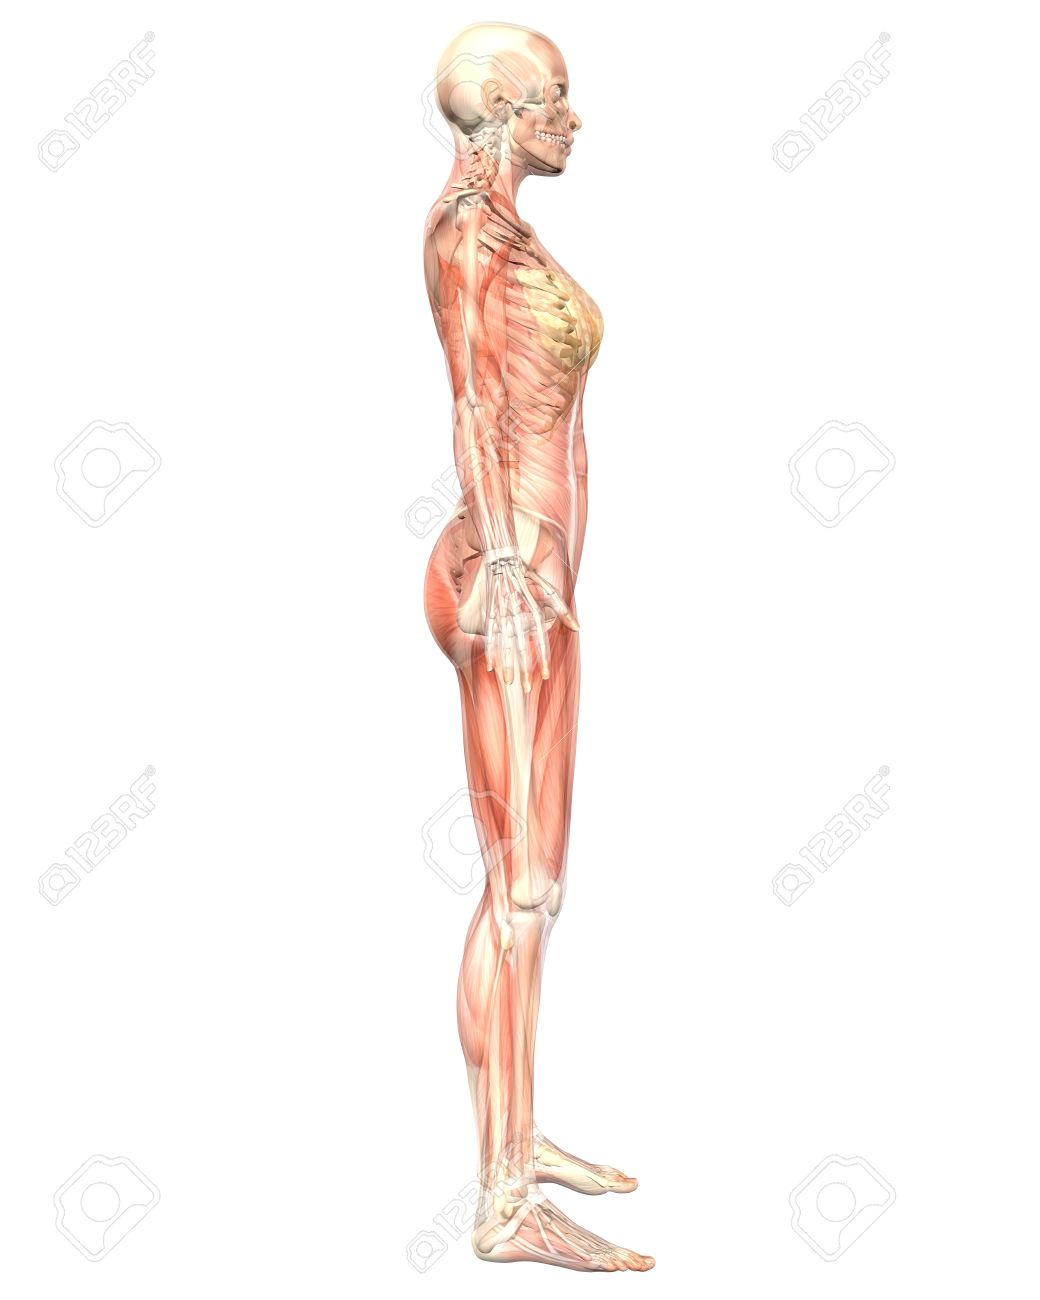 A Illustration Of The Side View Of The Female Muscular Anatomy